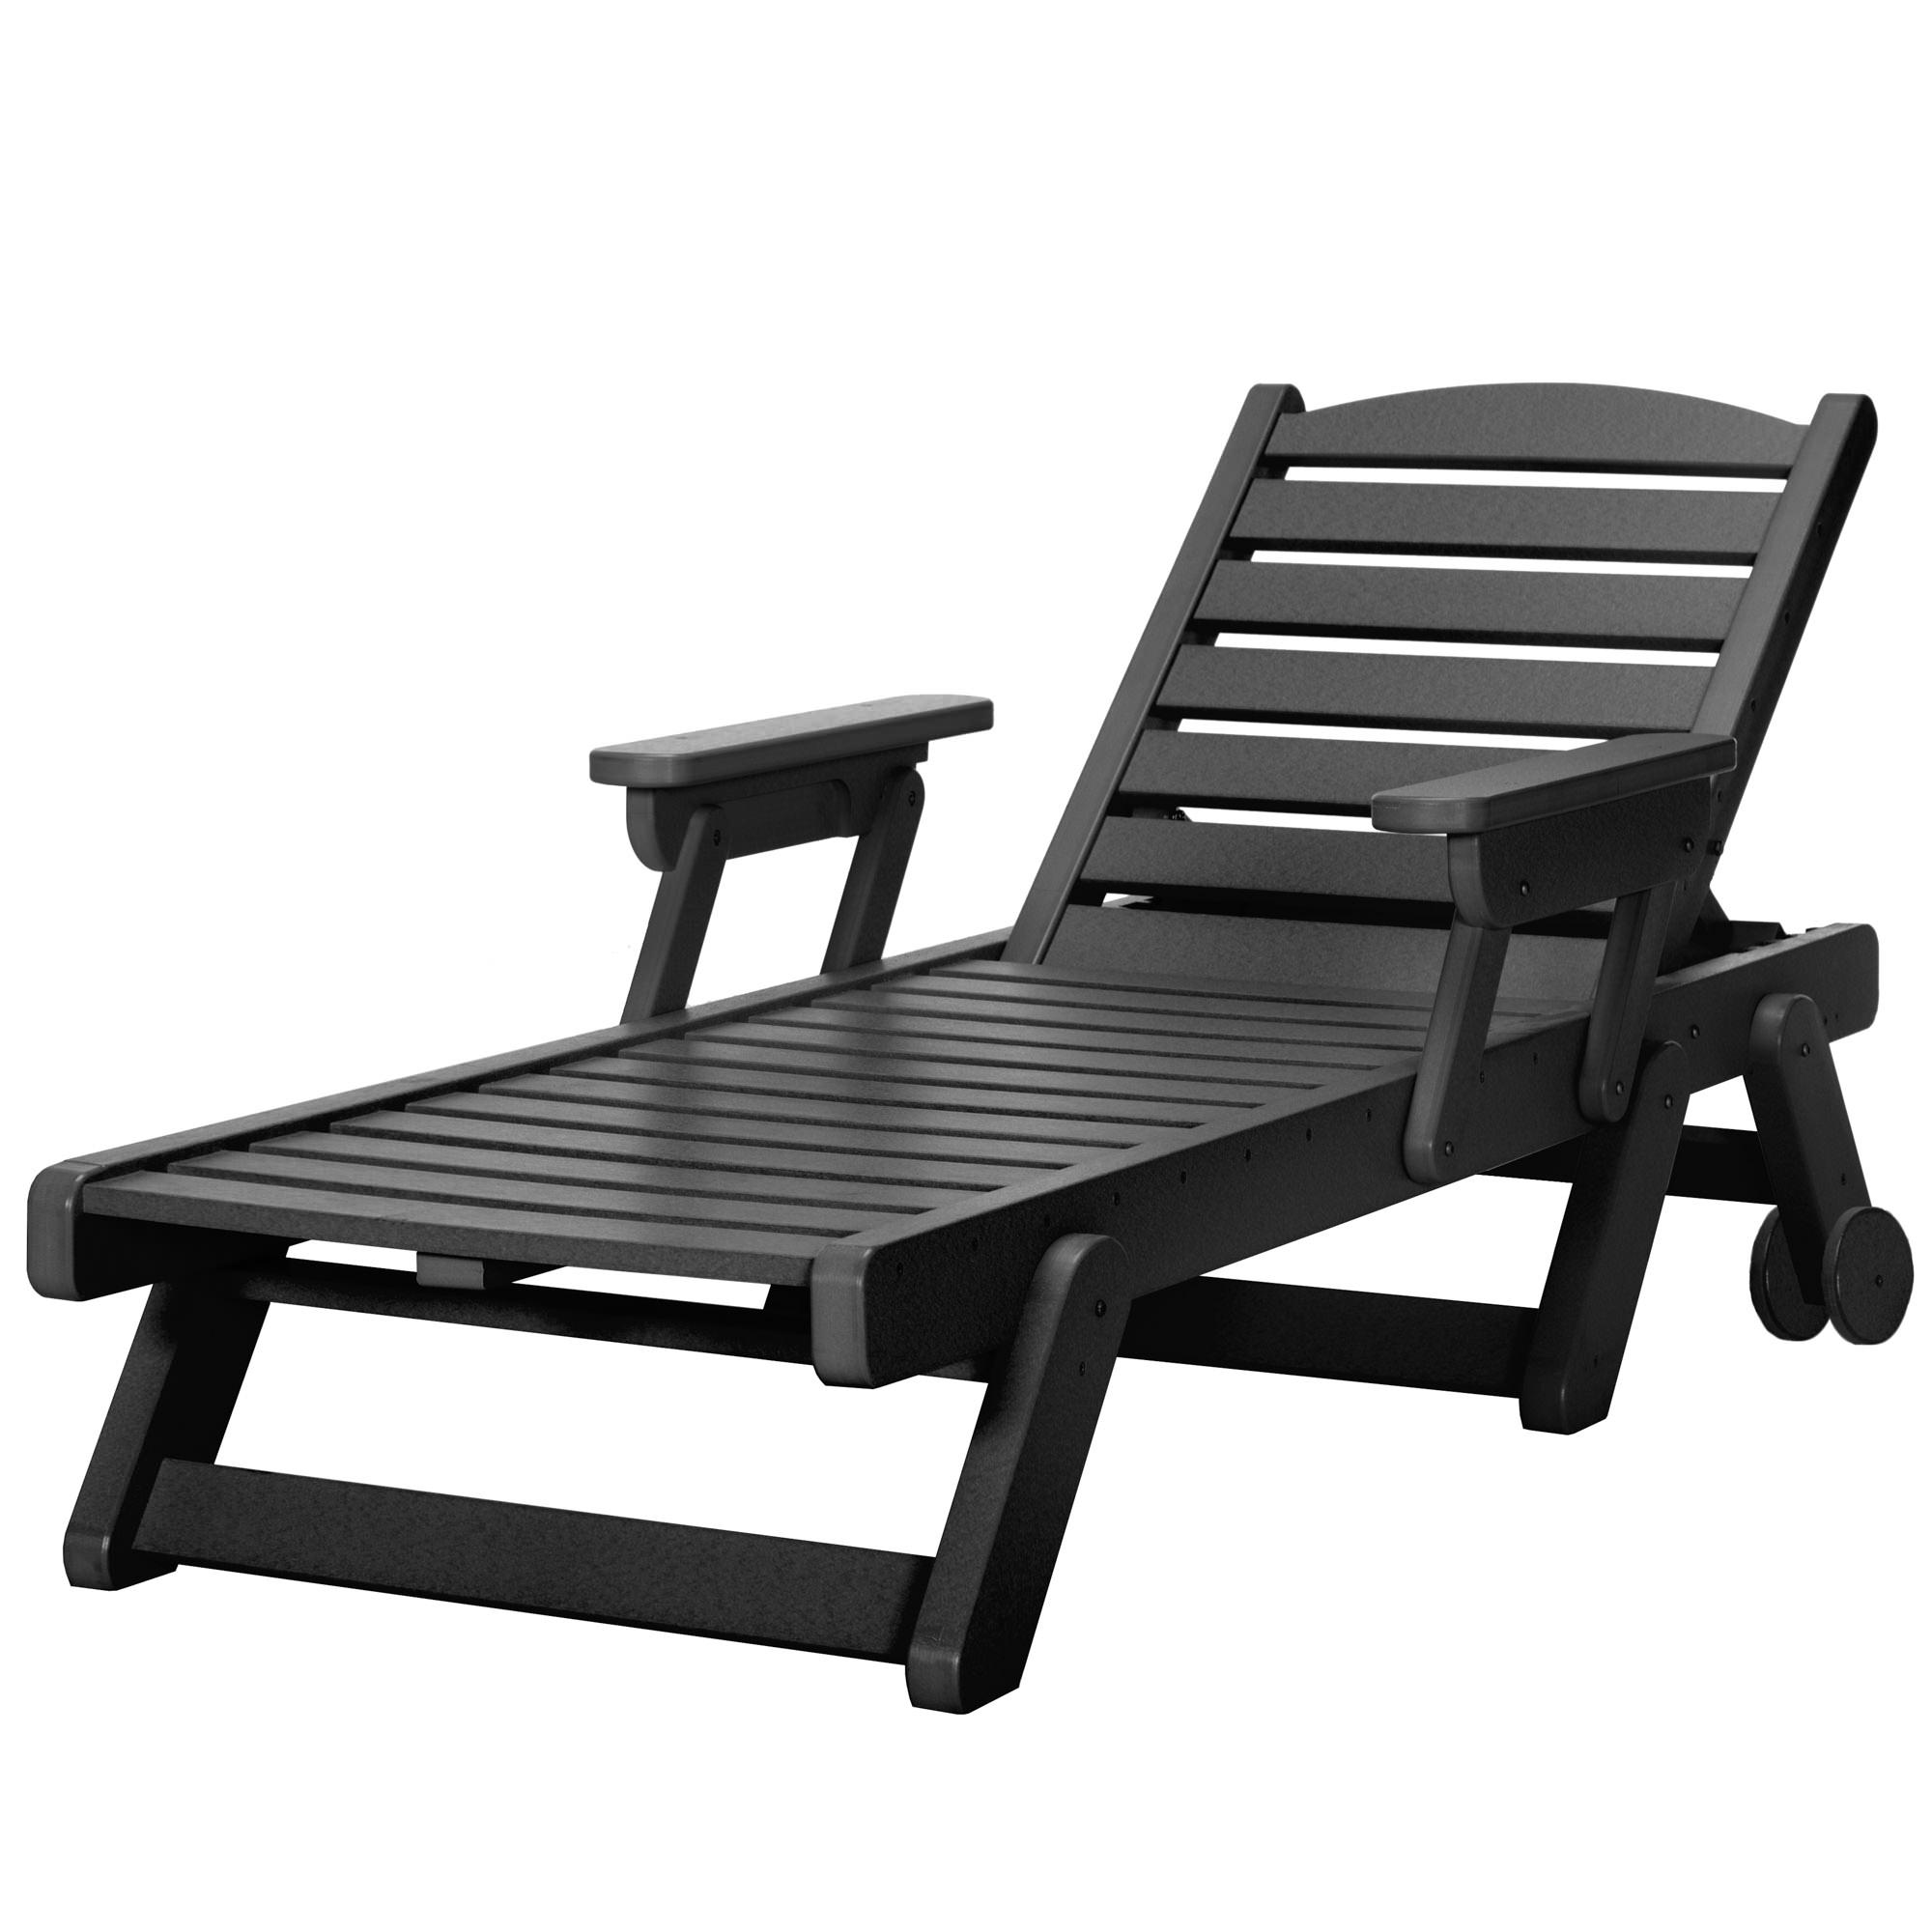 patio depot en chaise p with lounge brown home franklin cushion categories all canada outdoors chairs estates the loungers and wicker seating furniture weather